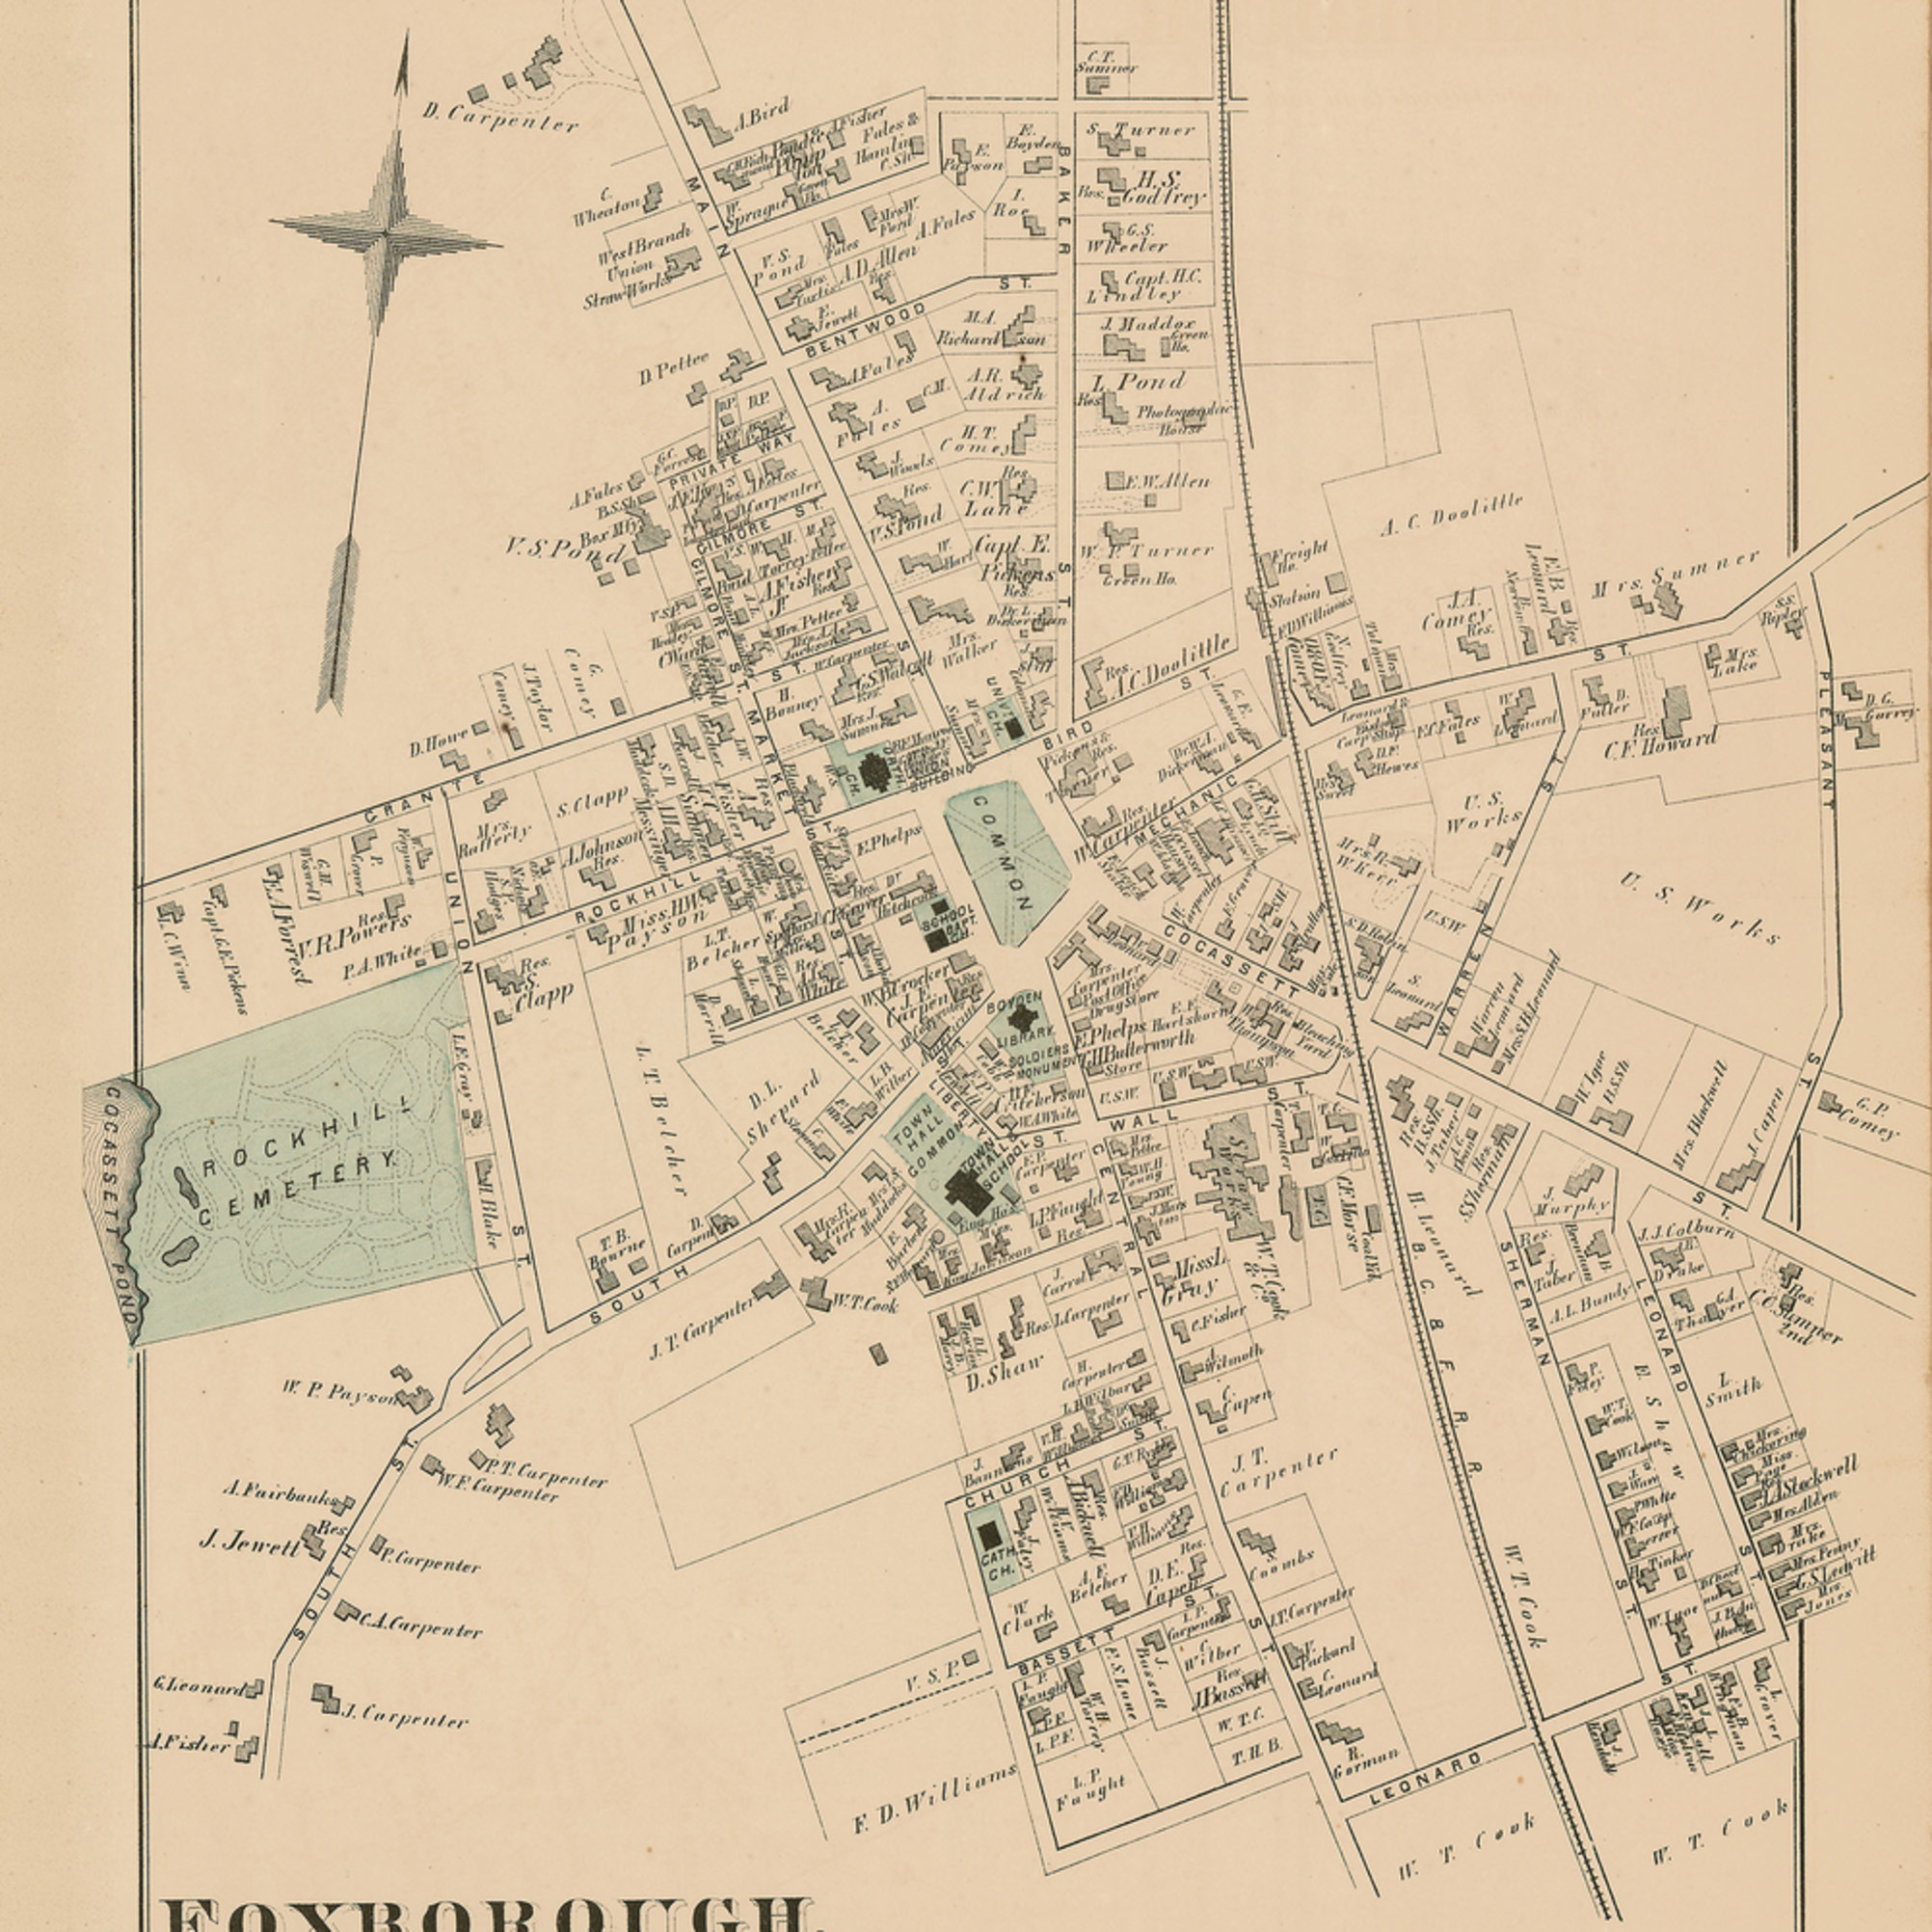 019 foxborough village1876 13x16 28 sgnsfu